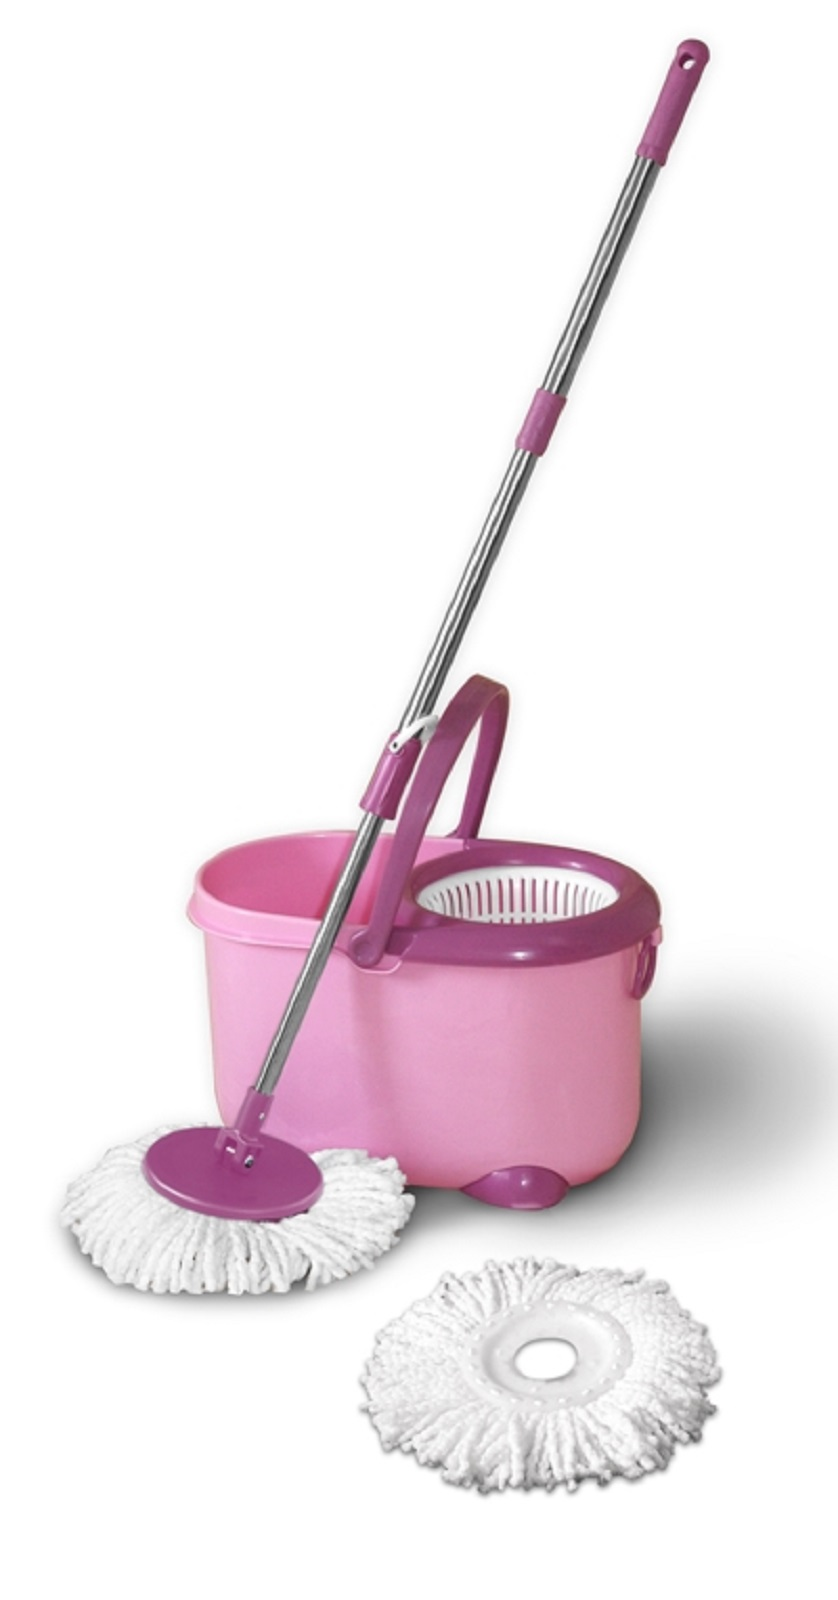 EcoGecko Deluxe Magic Mop and Spin Dry Bucket w/ 2 Mop Heads - Pink at Sears.com